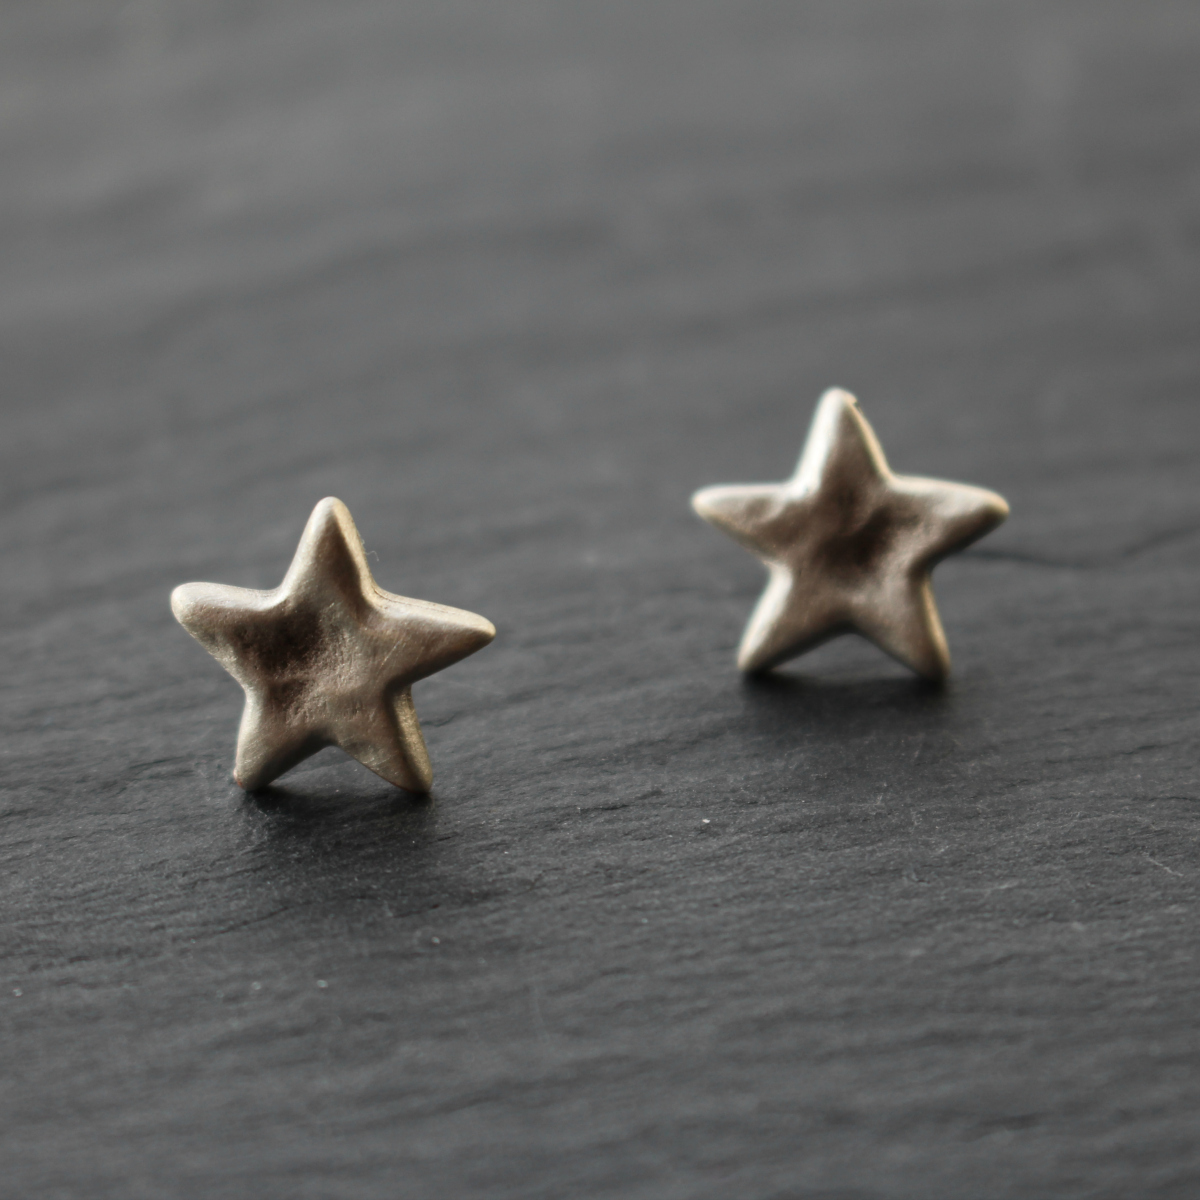 birdhouse jewellery danon dainty star stud earrings